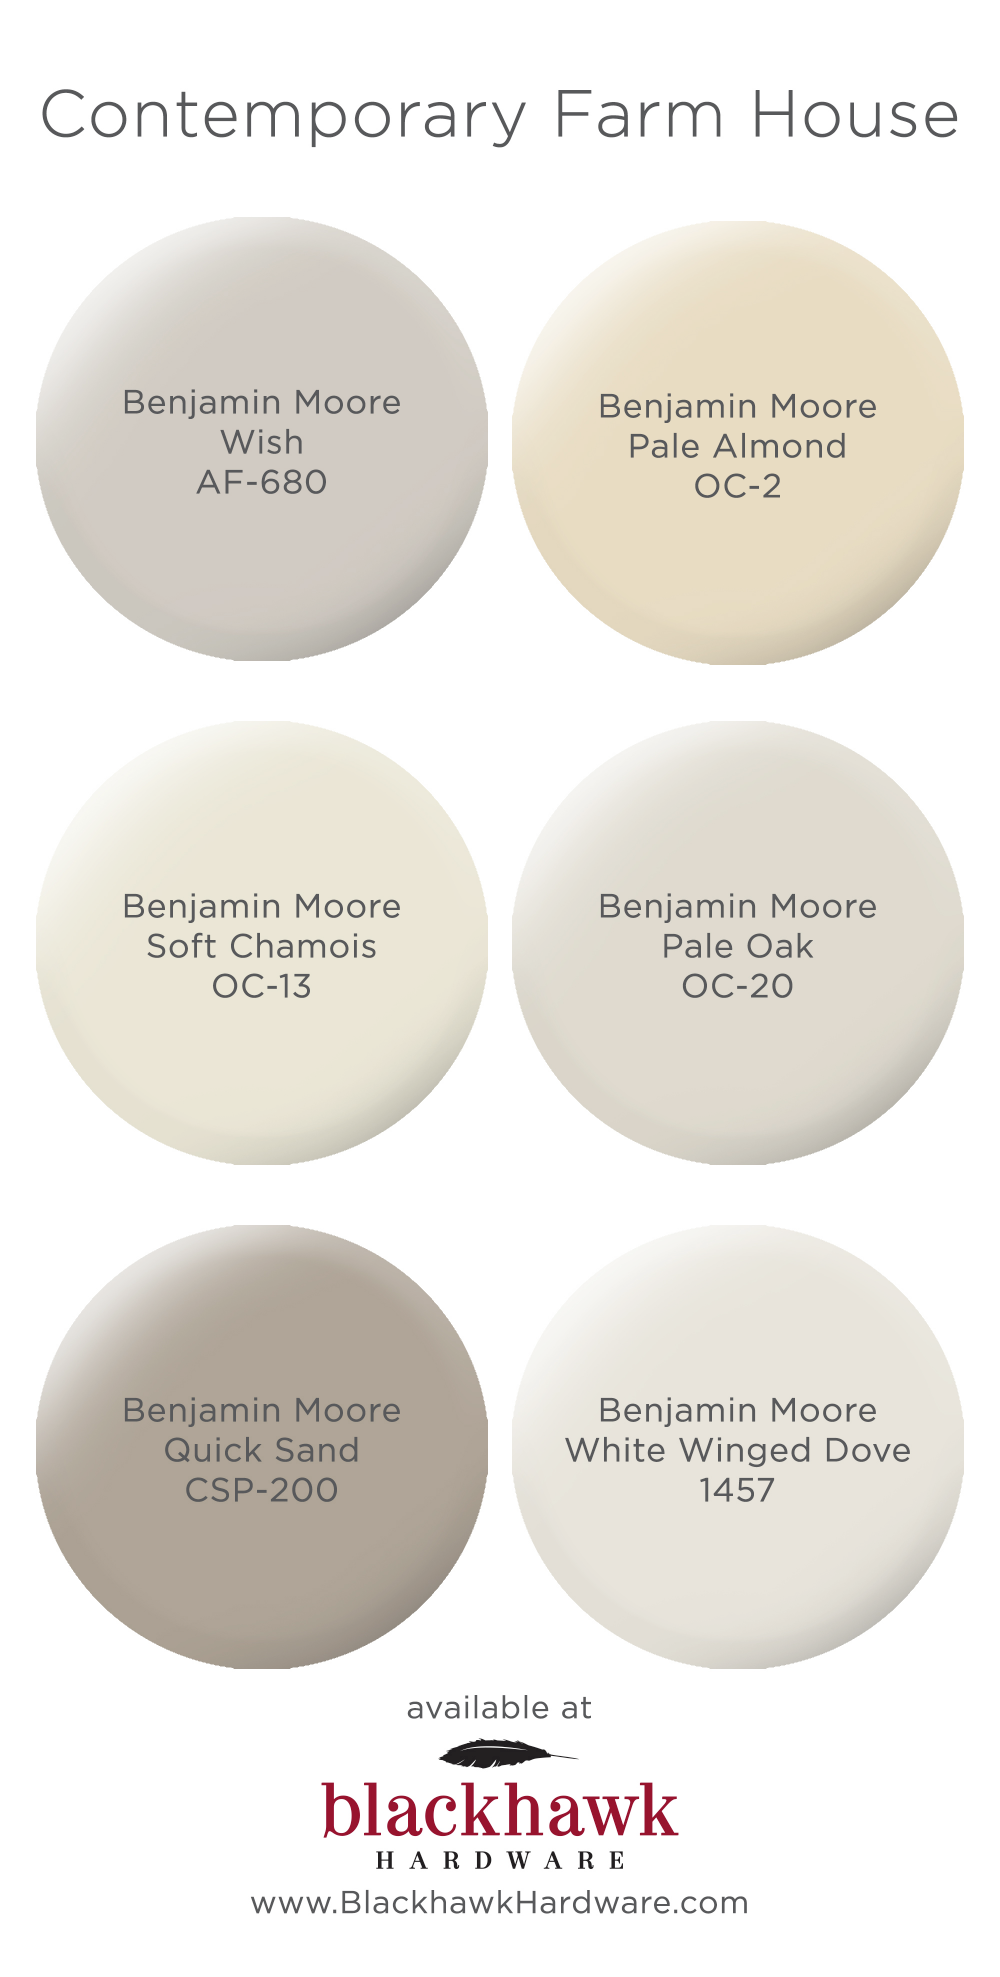 Paint Colors for Modern Farm House Interior Design